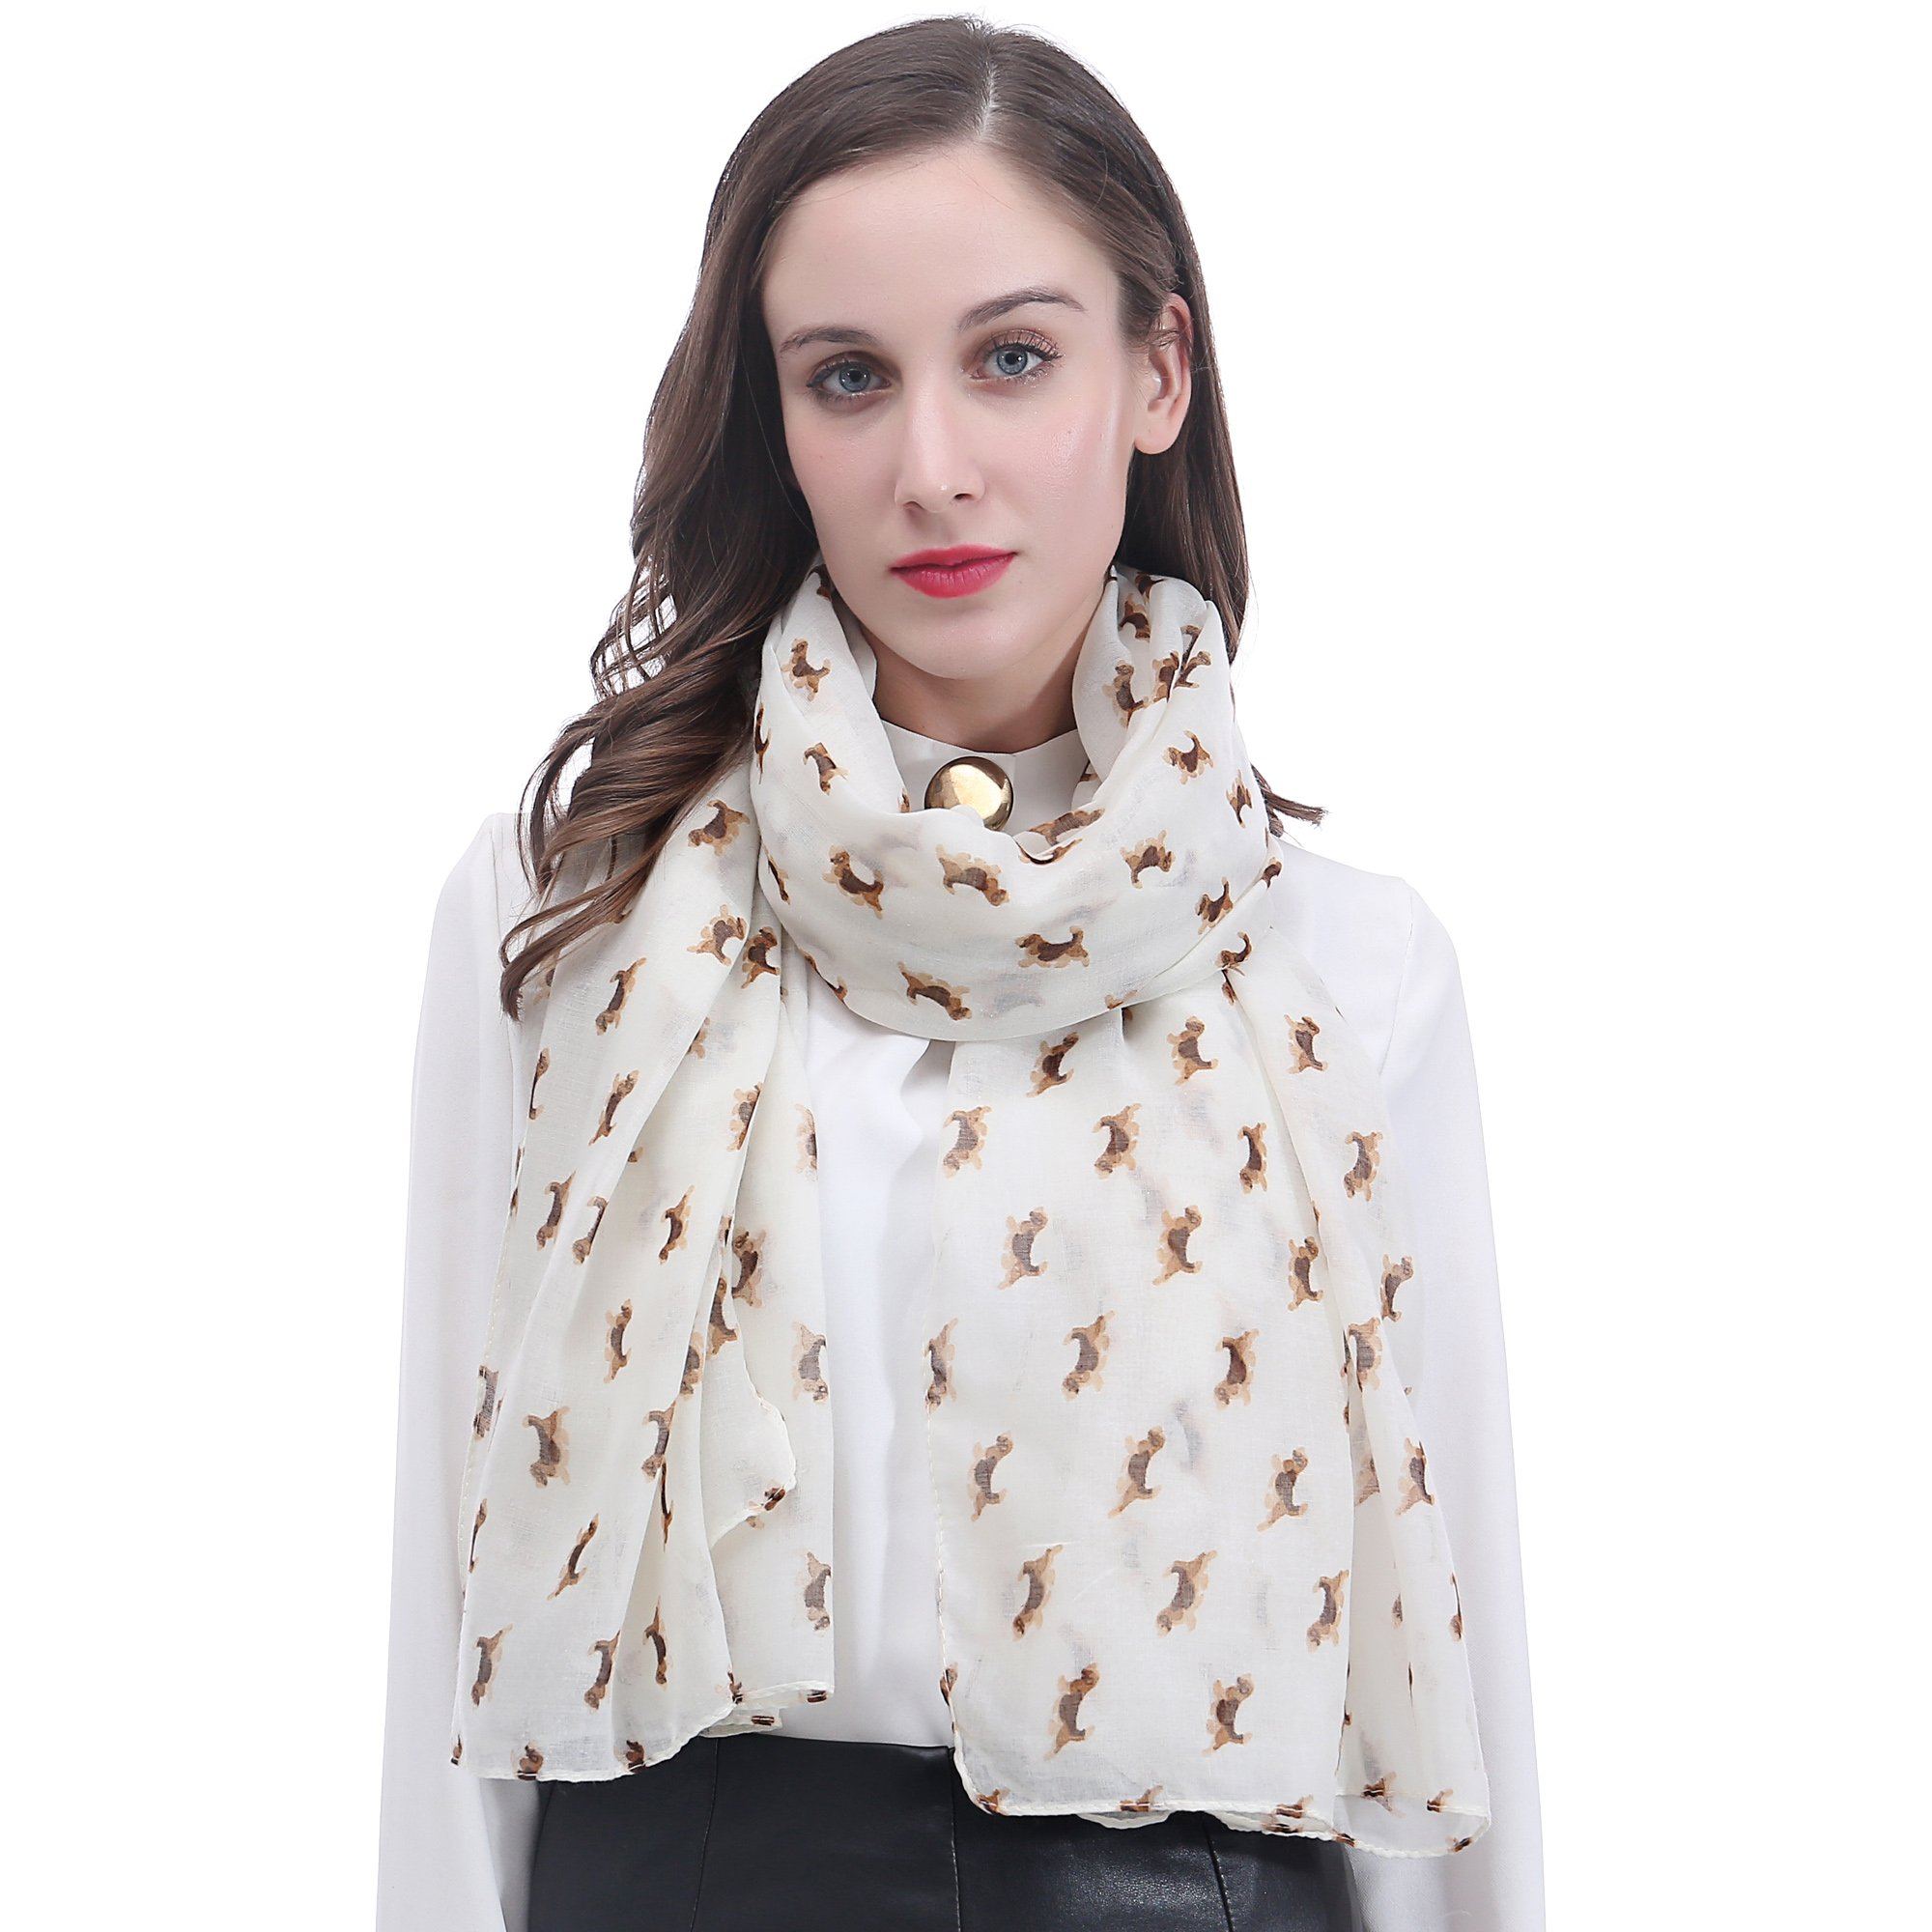 Lina & Lily Beagle Dog Print Women's Scarf Oversized